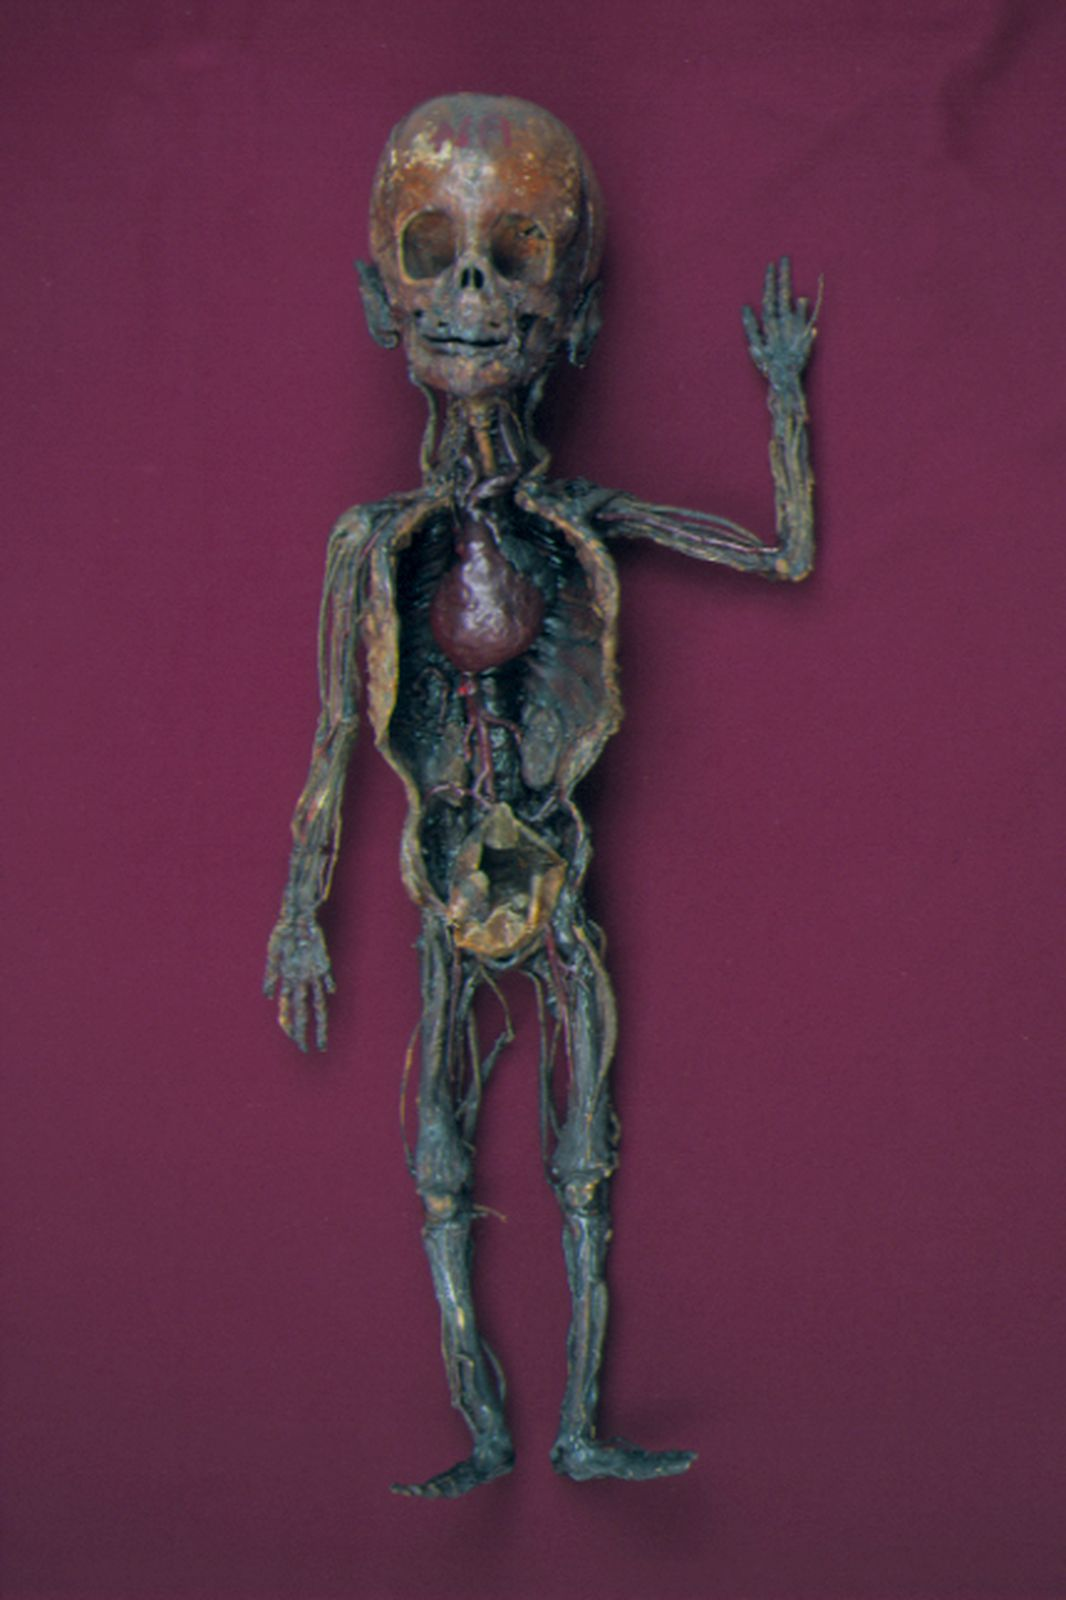 A Burns Collection specimen has been fully prosected. Most of the internal organs have been removed, although the heart is clearly visible.  The age of the child is not known, but it is slightly older than an infant.